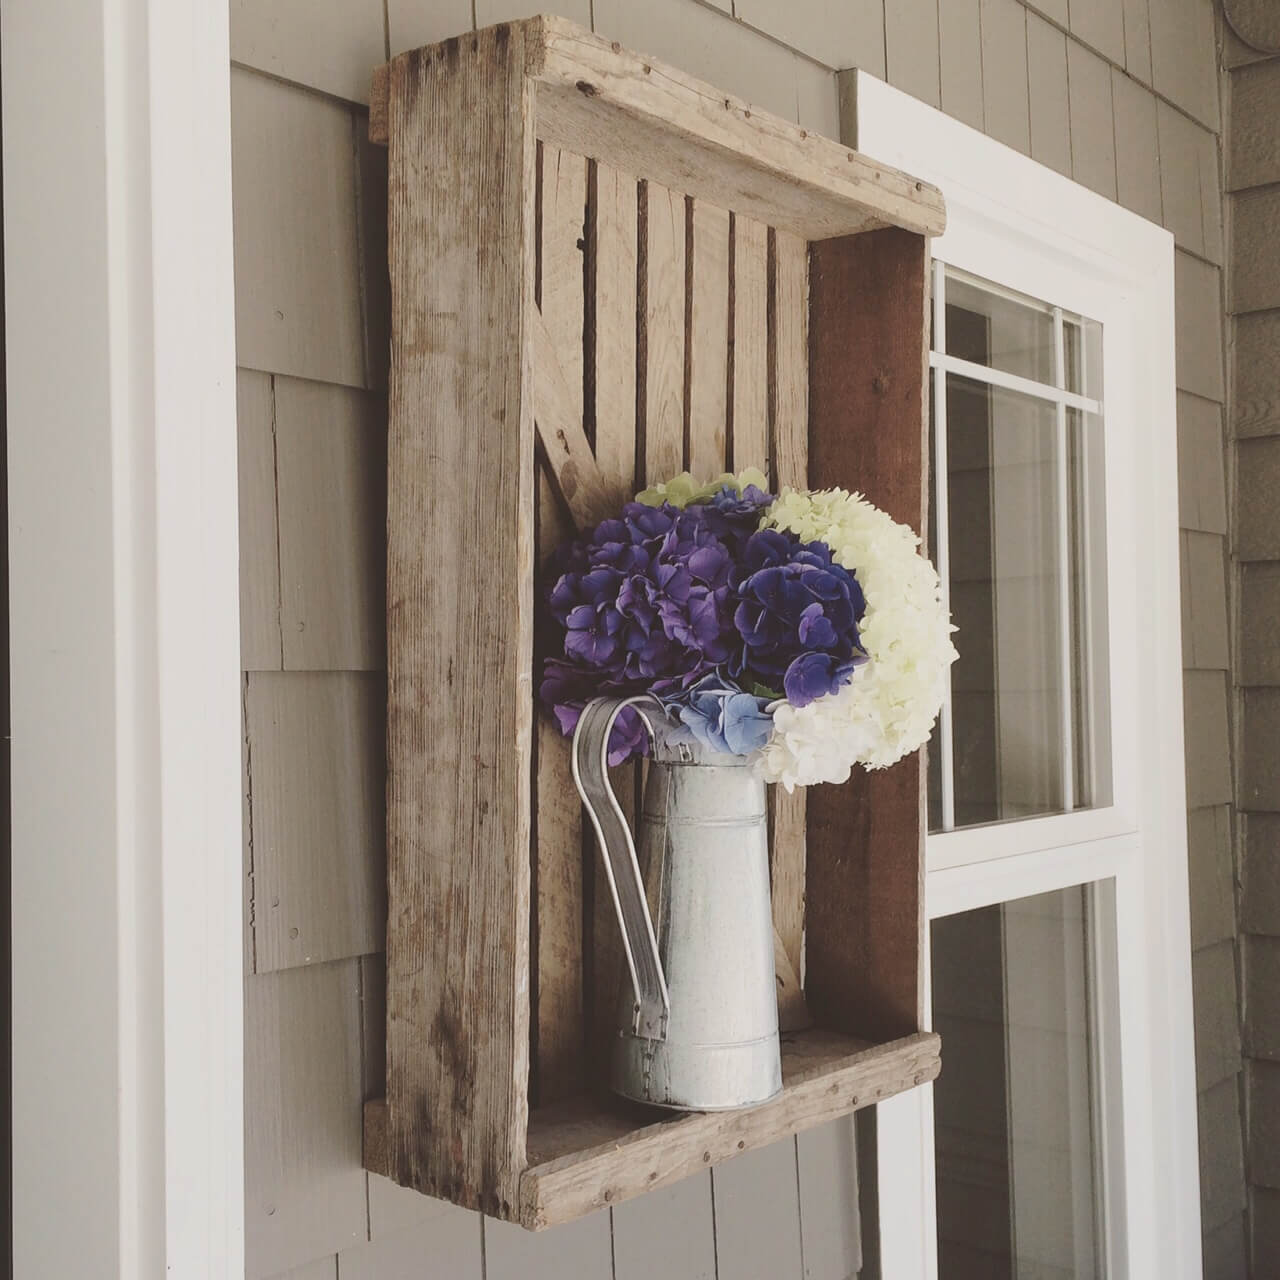 45 Best Cottage Style Garden Ideas And Designs For 2020: 47 Best Rustic Farmhouse Porch Decor Ideas And Designs For